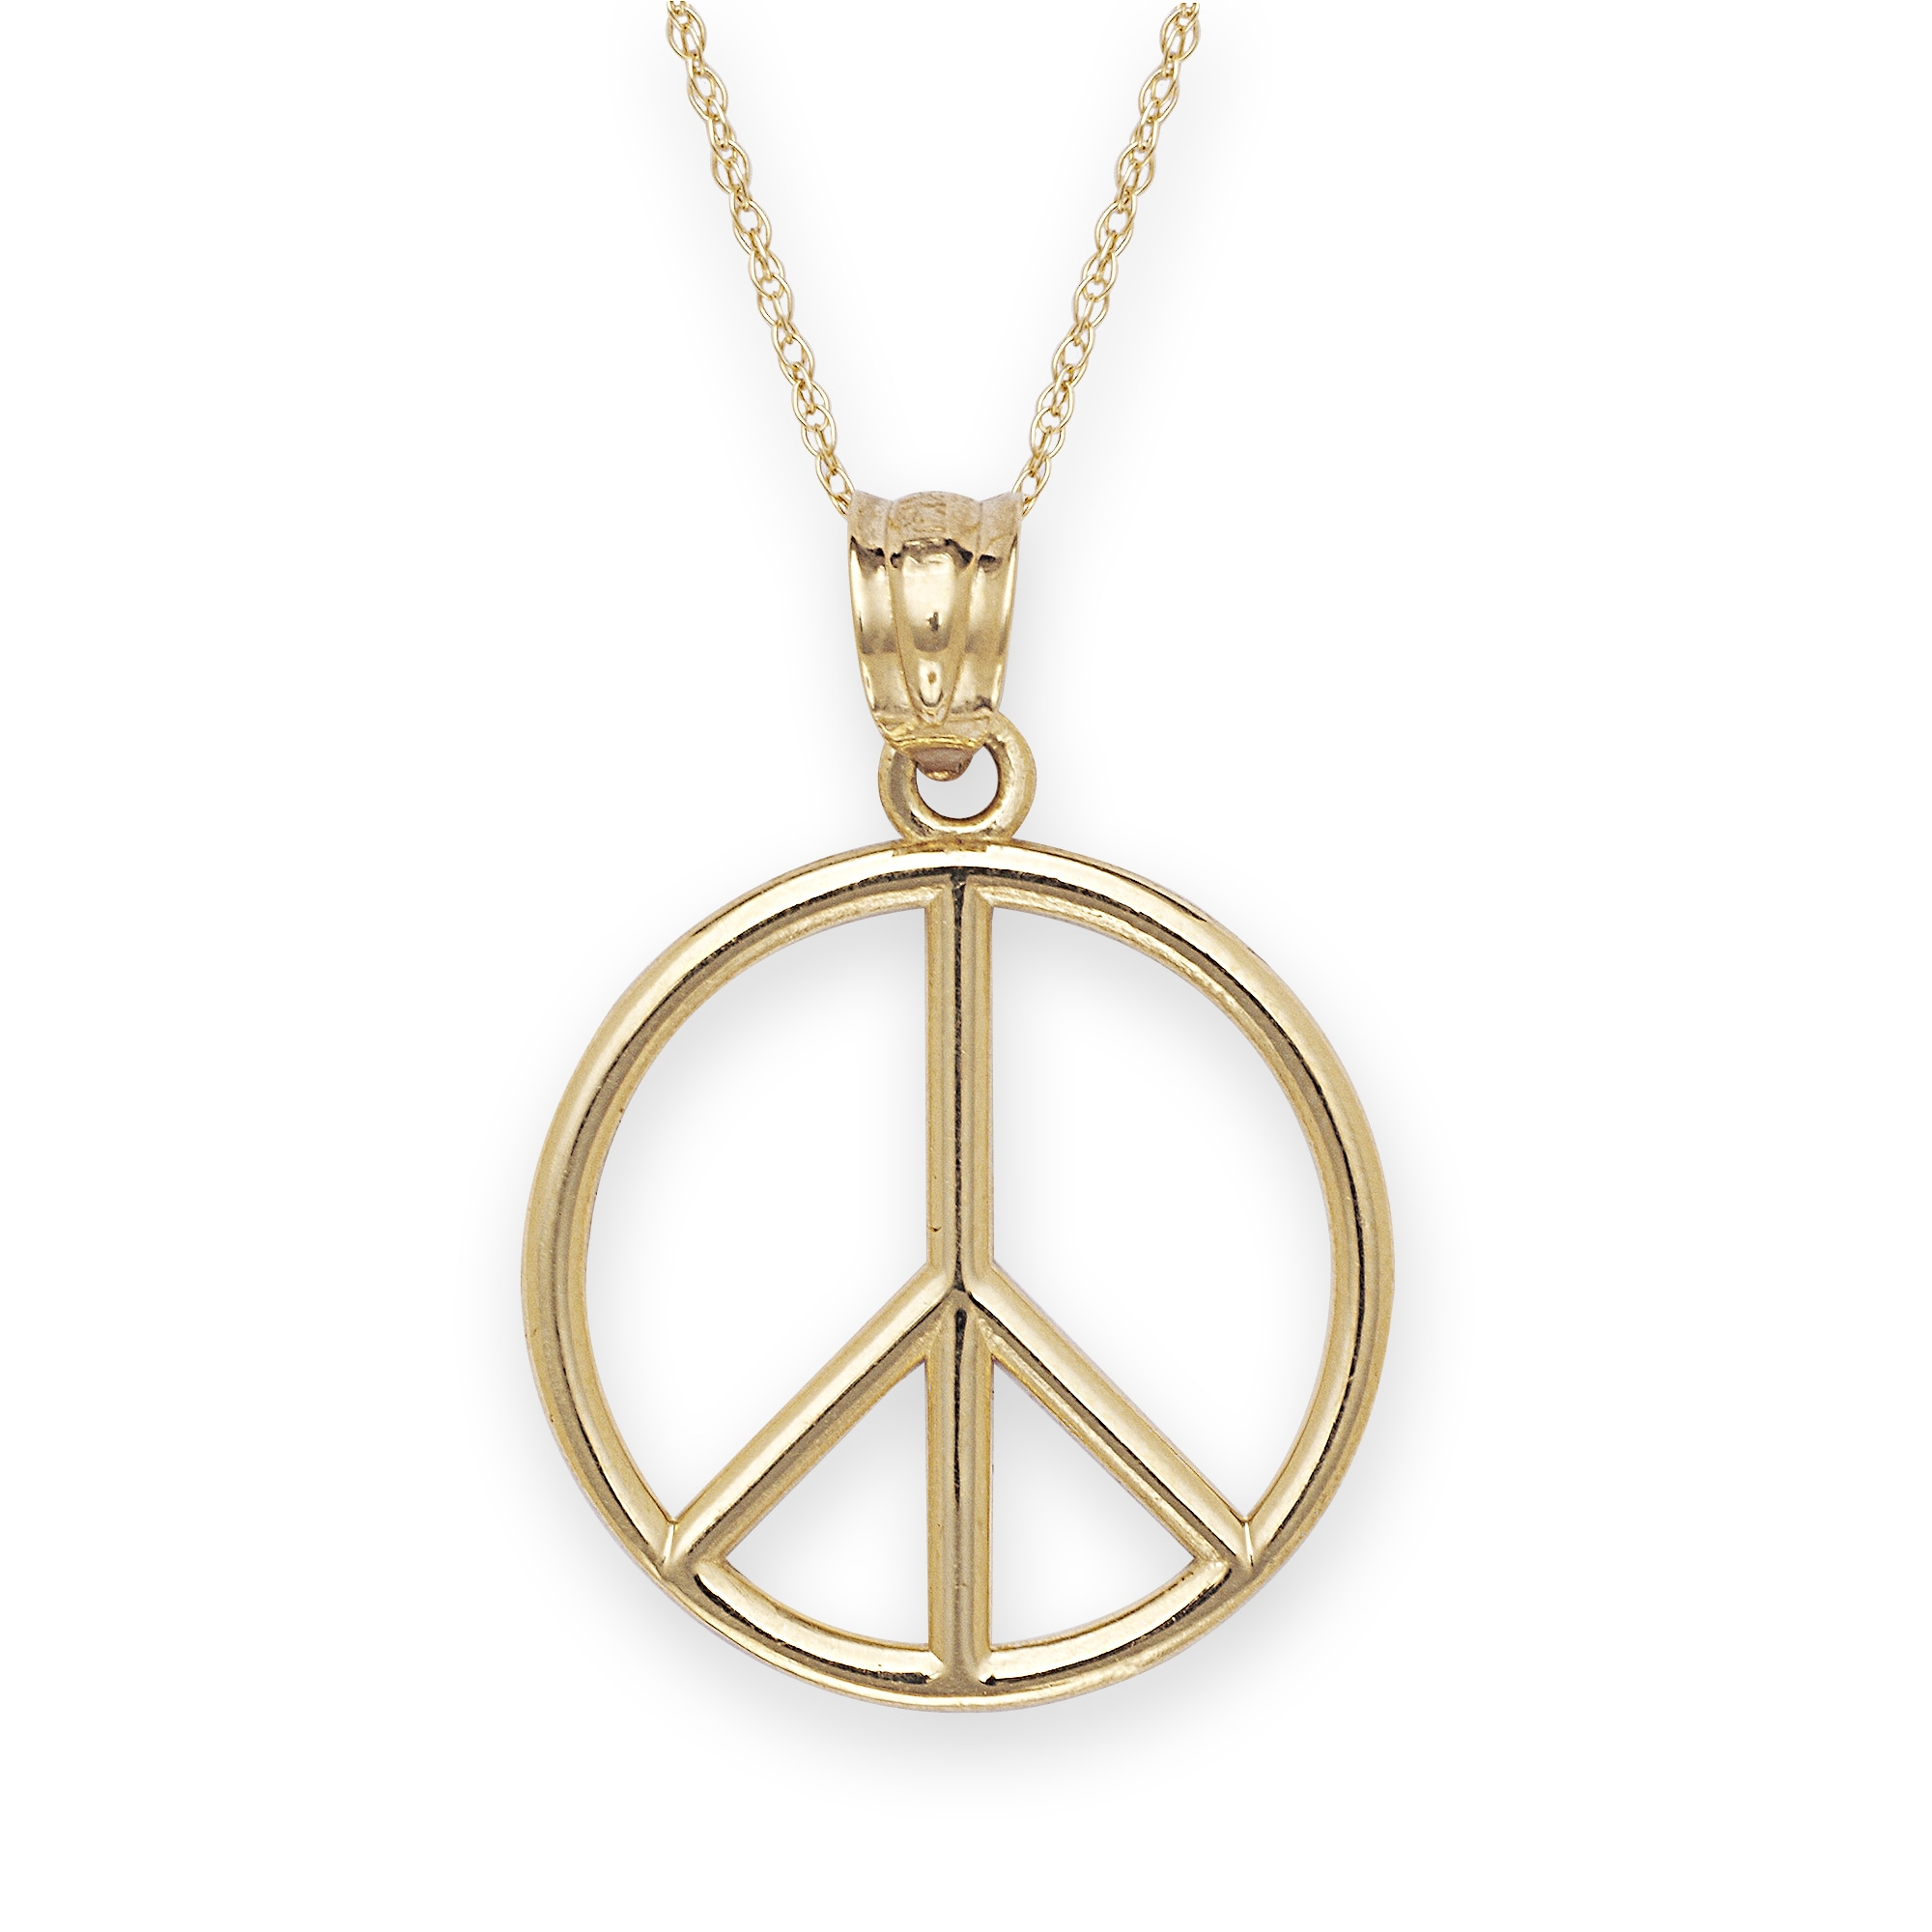 necklace overstock watches free peace jewelry product sign shipping today pendant fremada gold